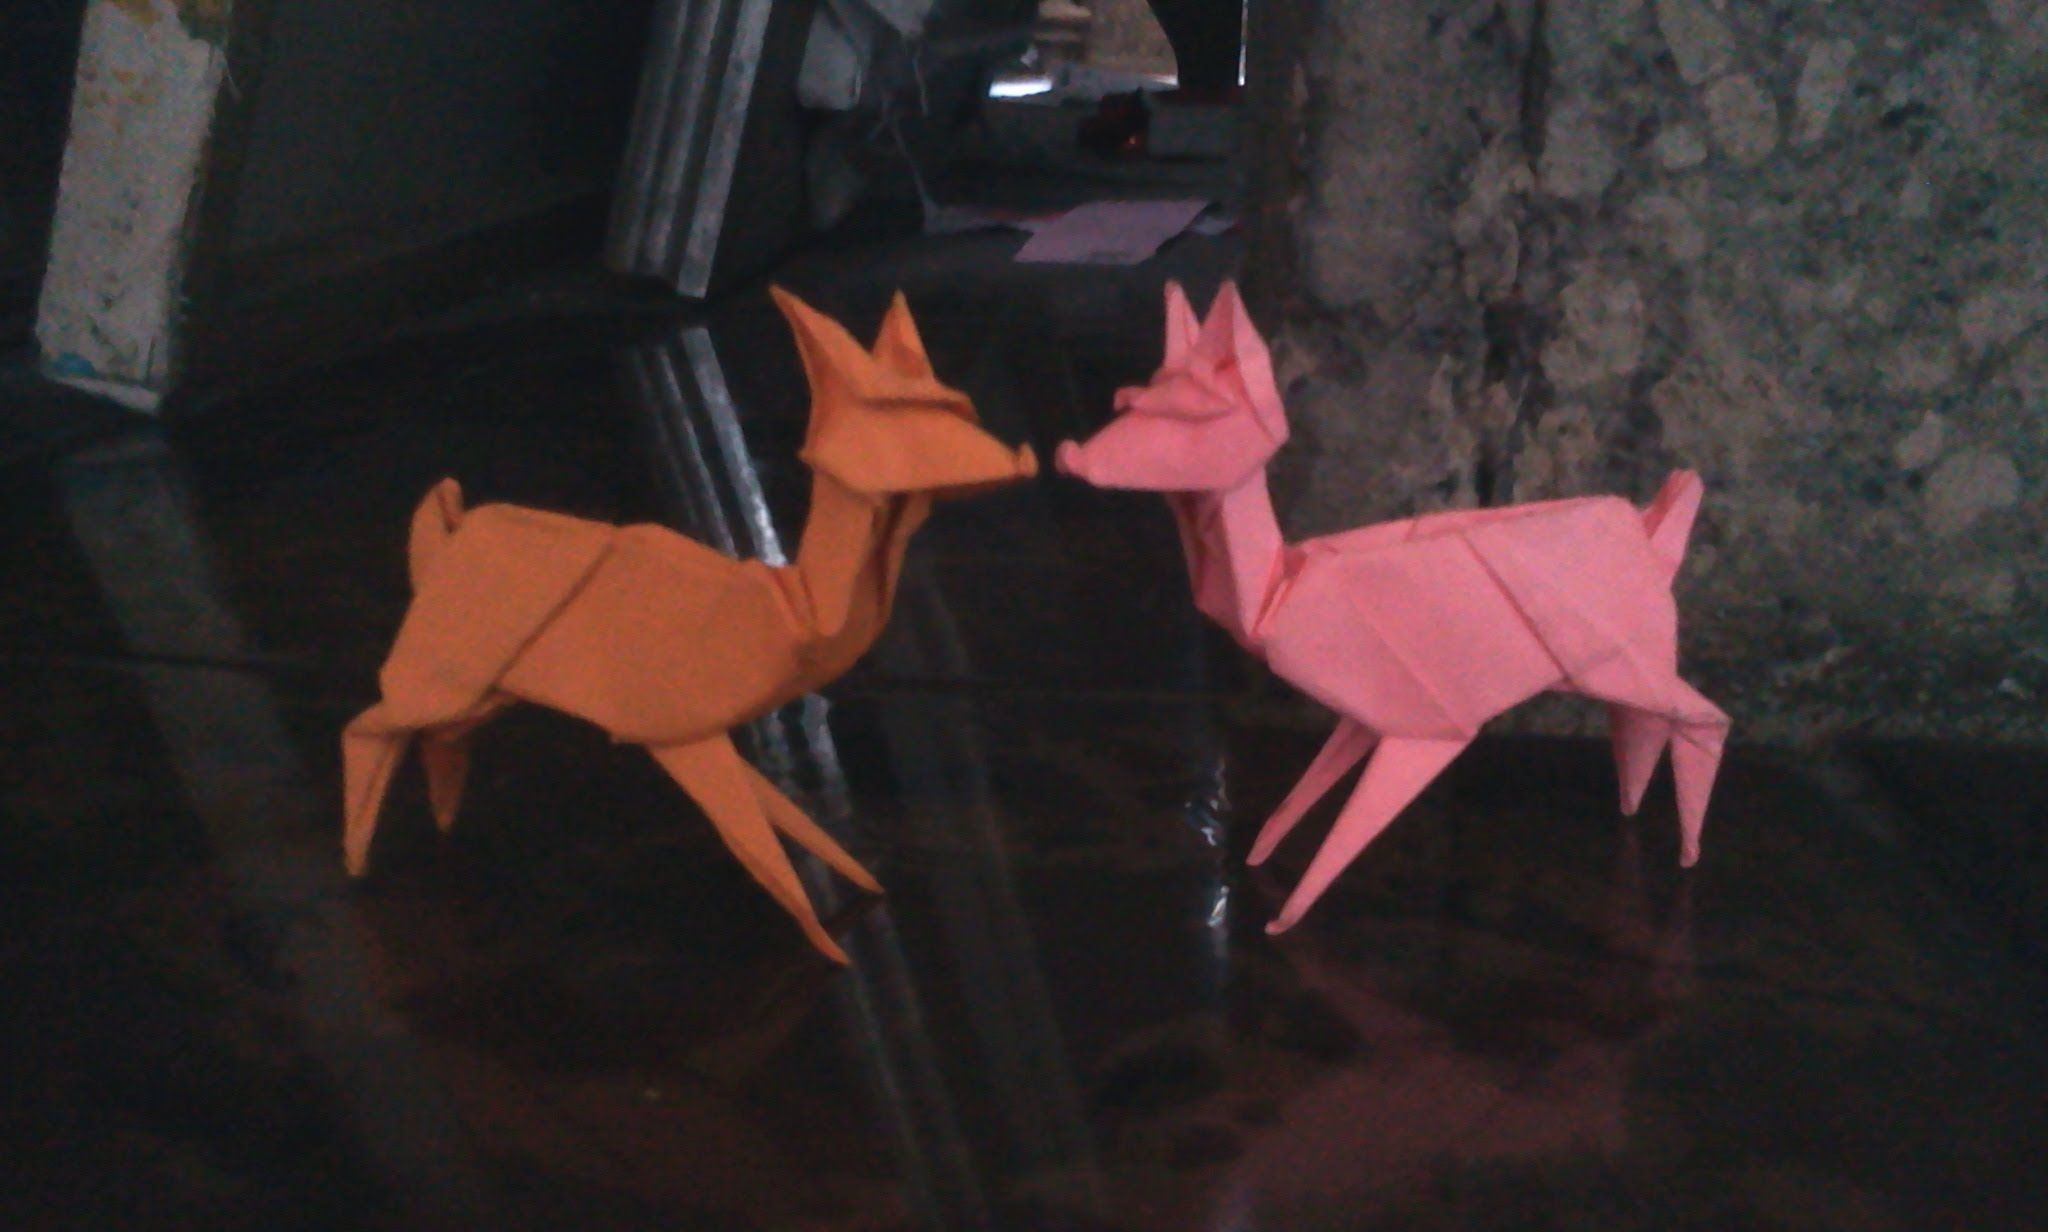 How To Make Origami Deer Stephen Weiss This Would Be Cute On A Halloween Diagram Babys Mobile